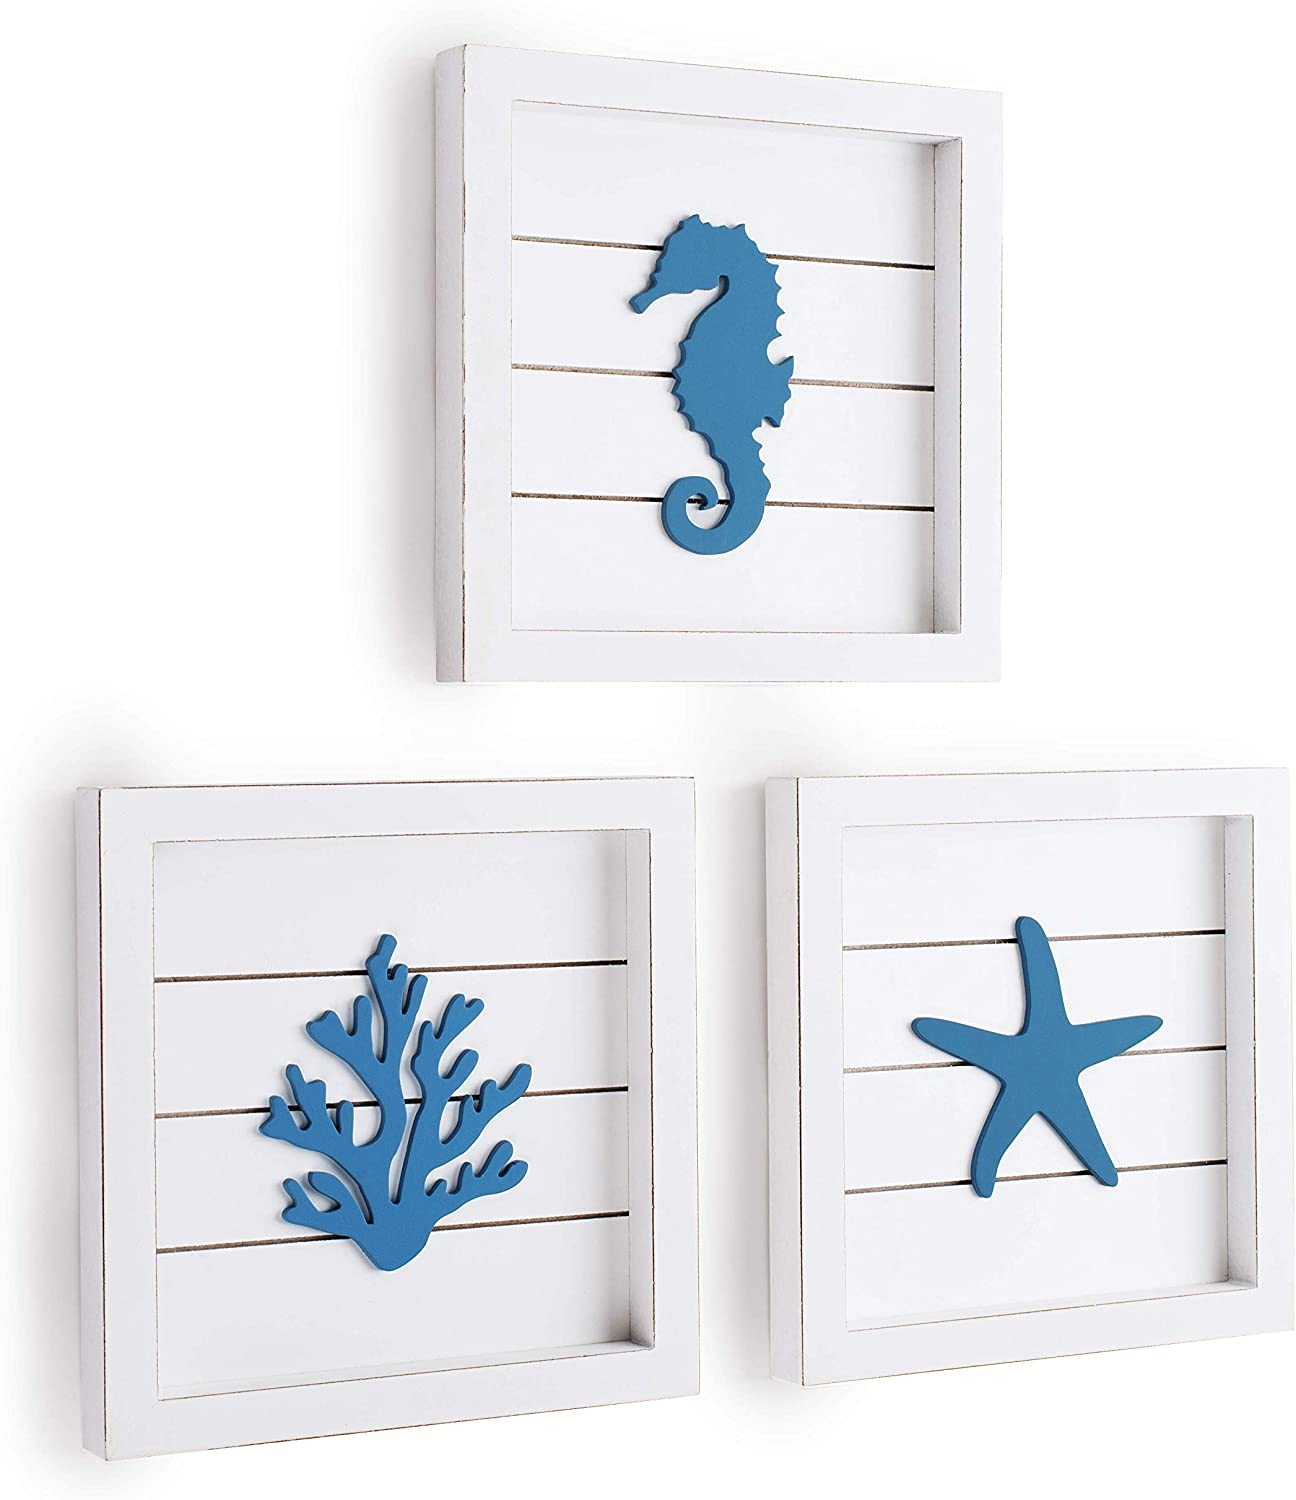 TideAndTales Beach Wall Decor Sea Life Framed Wooden Set with 3D Starfish Seahorse and Coral, Ocean Theme Marine Coastal Decor, Rustic Cottage Beach Bathroom Decor, Beach Decorations for Home